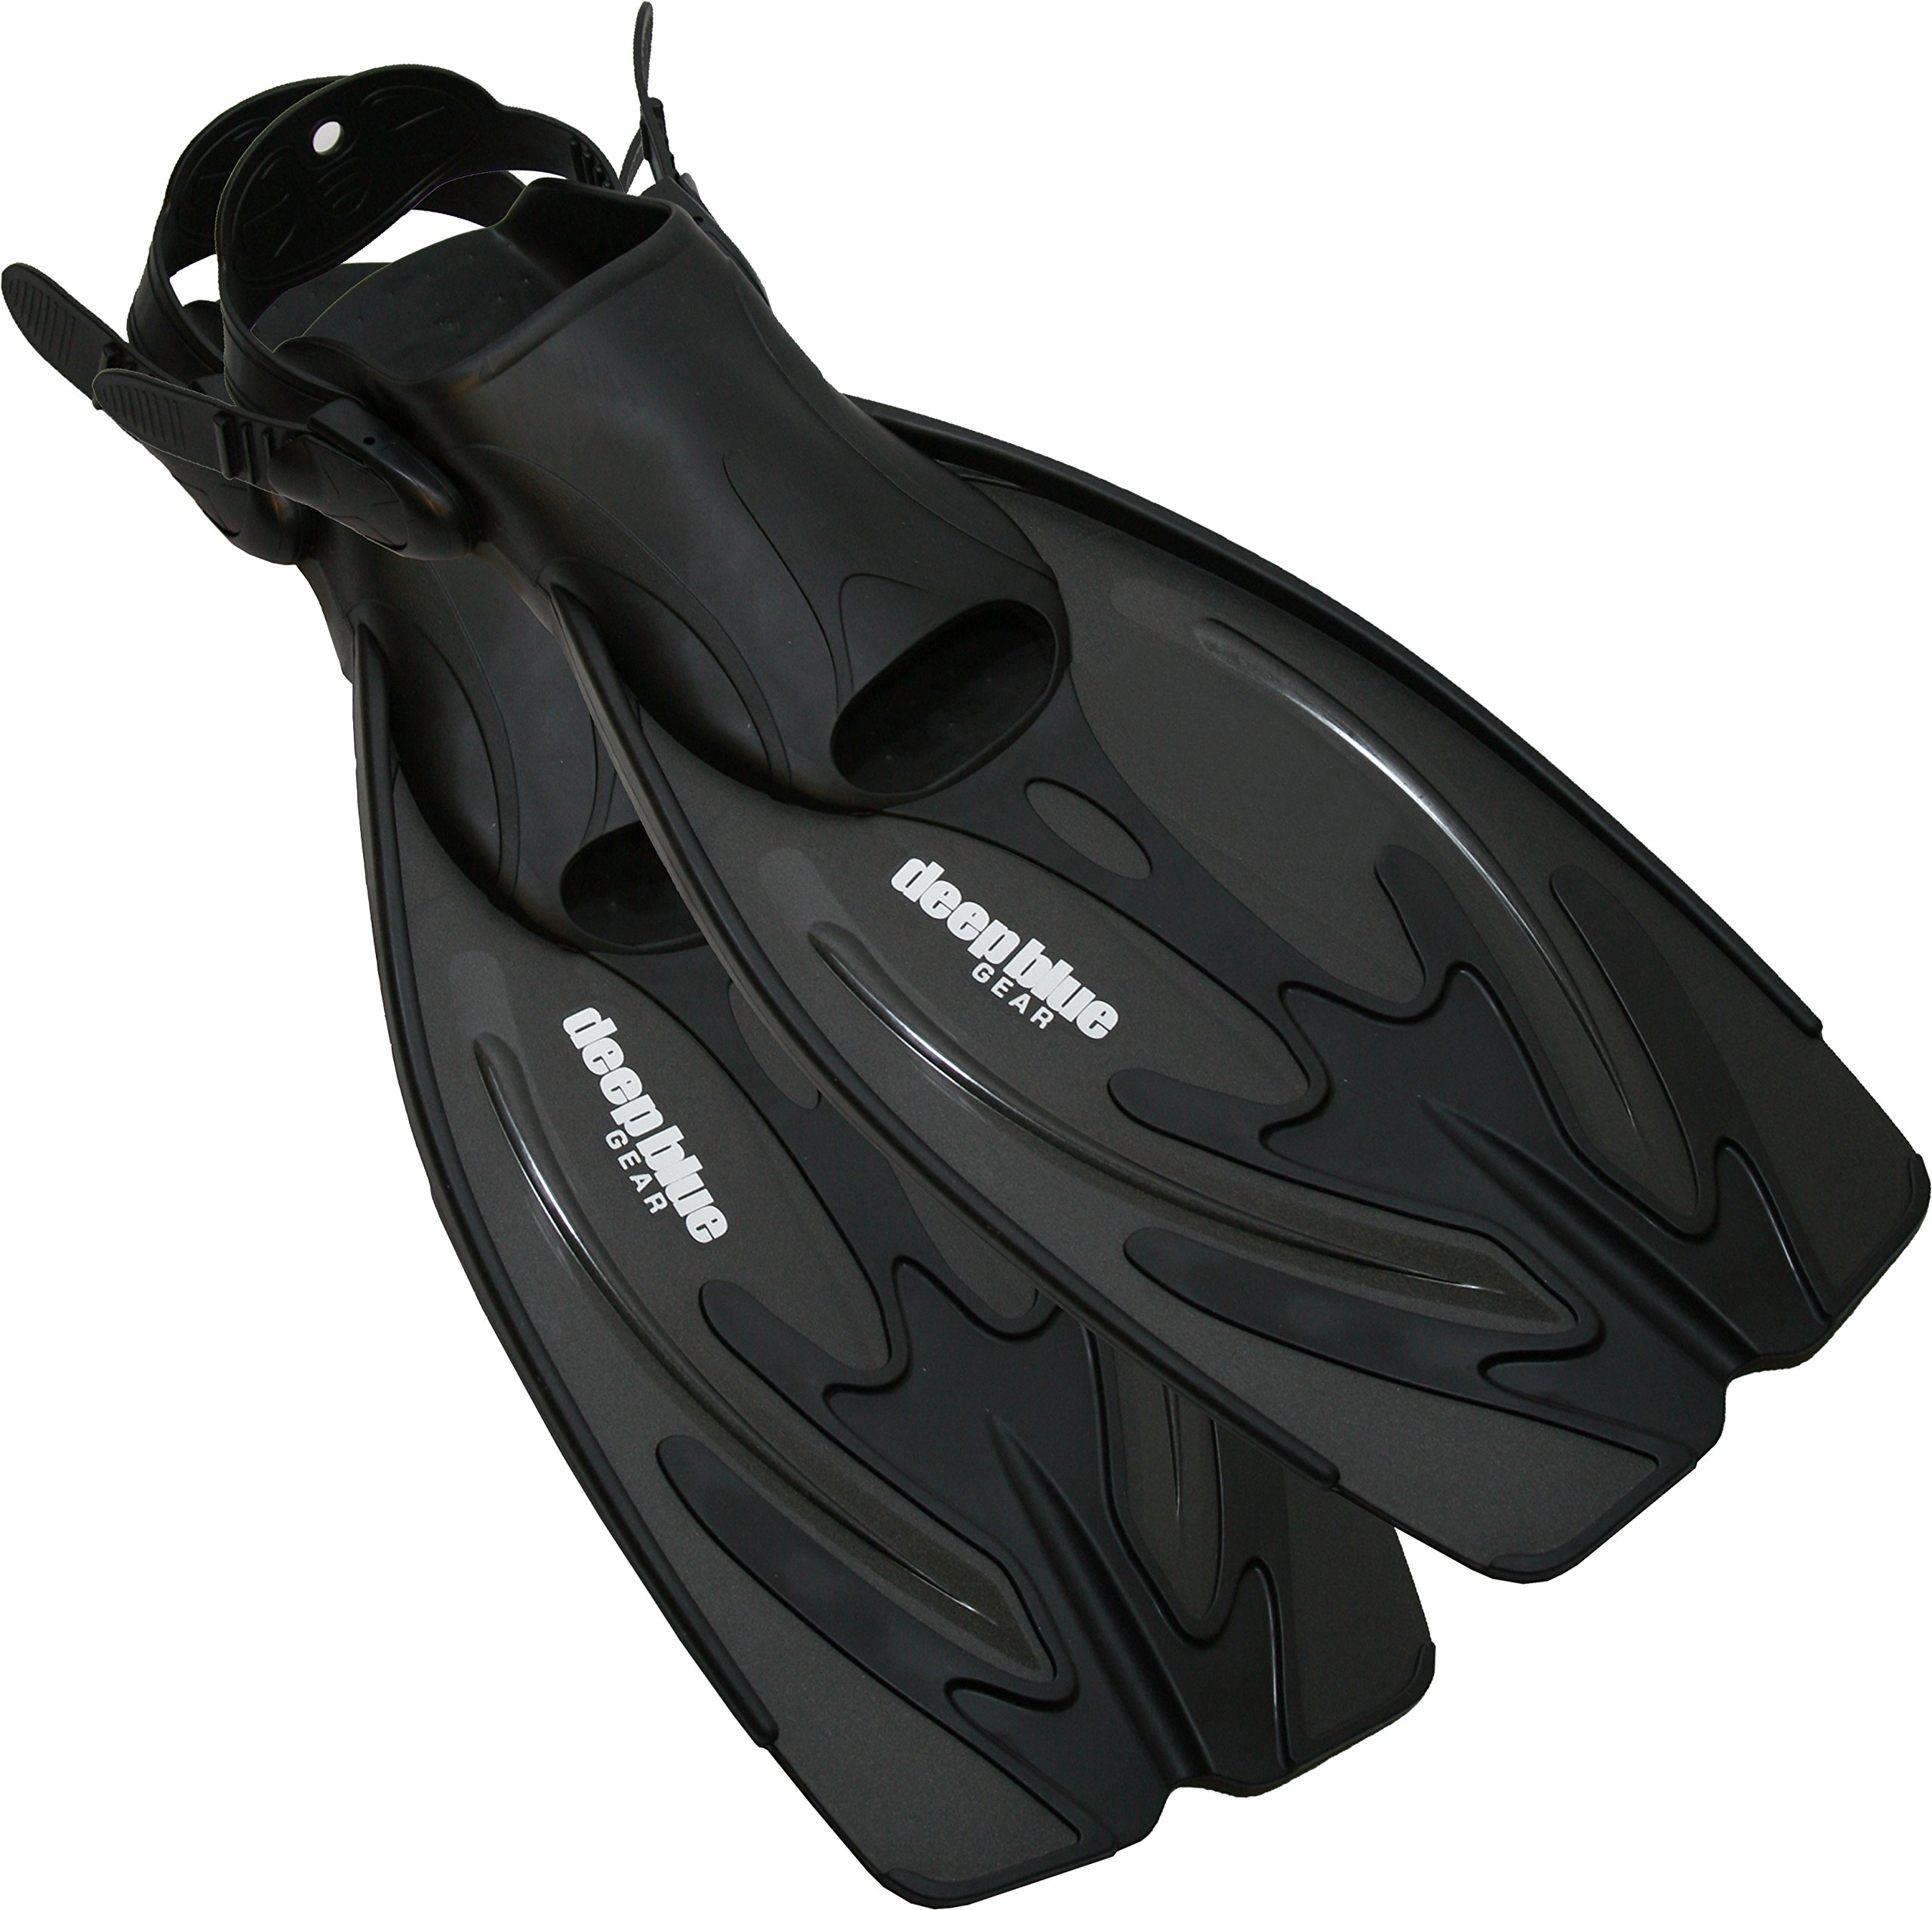 Deep Blue Gear Current Fins for Diving, Snorkeling, and Swim, Adult Size Large/X-Large (Men's 10-12, Women's 11-13), Black